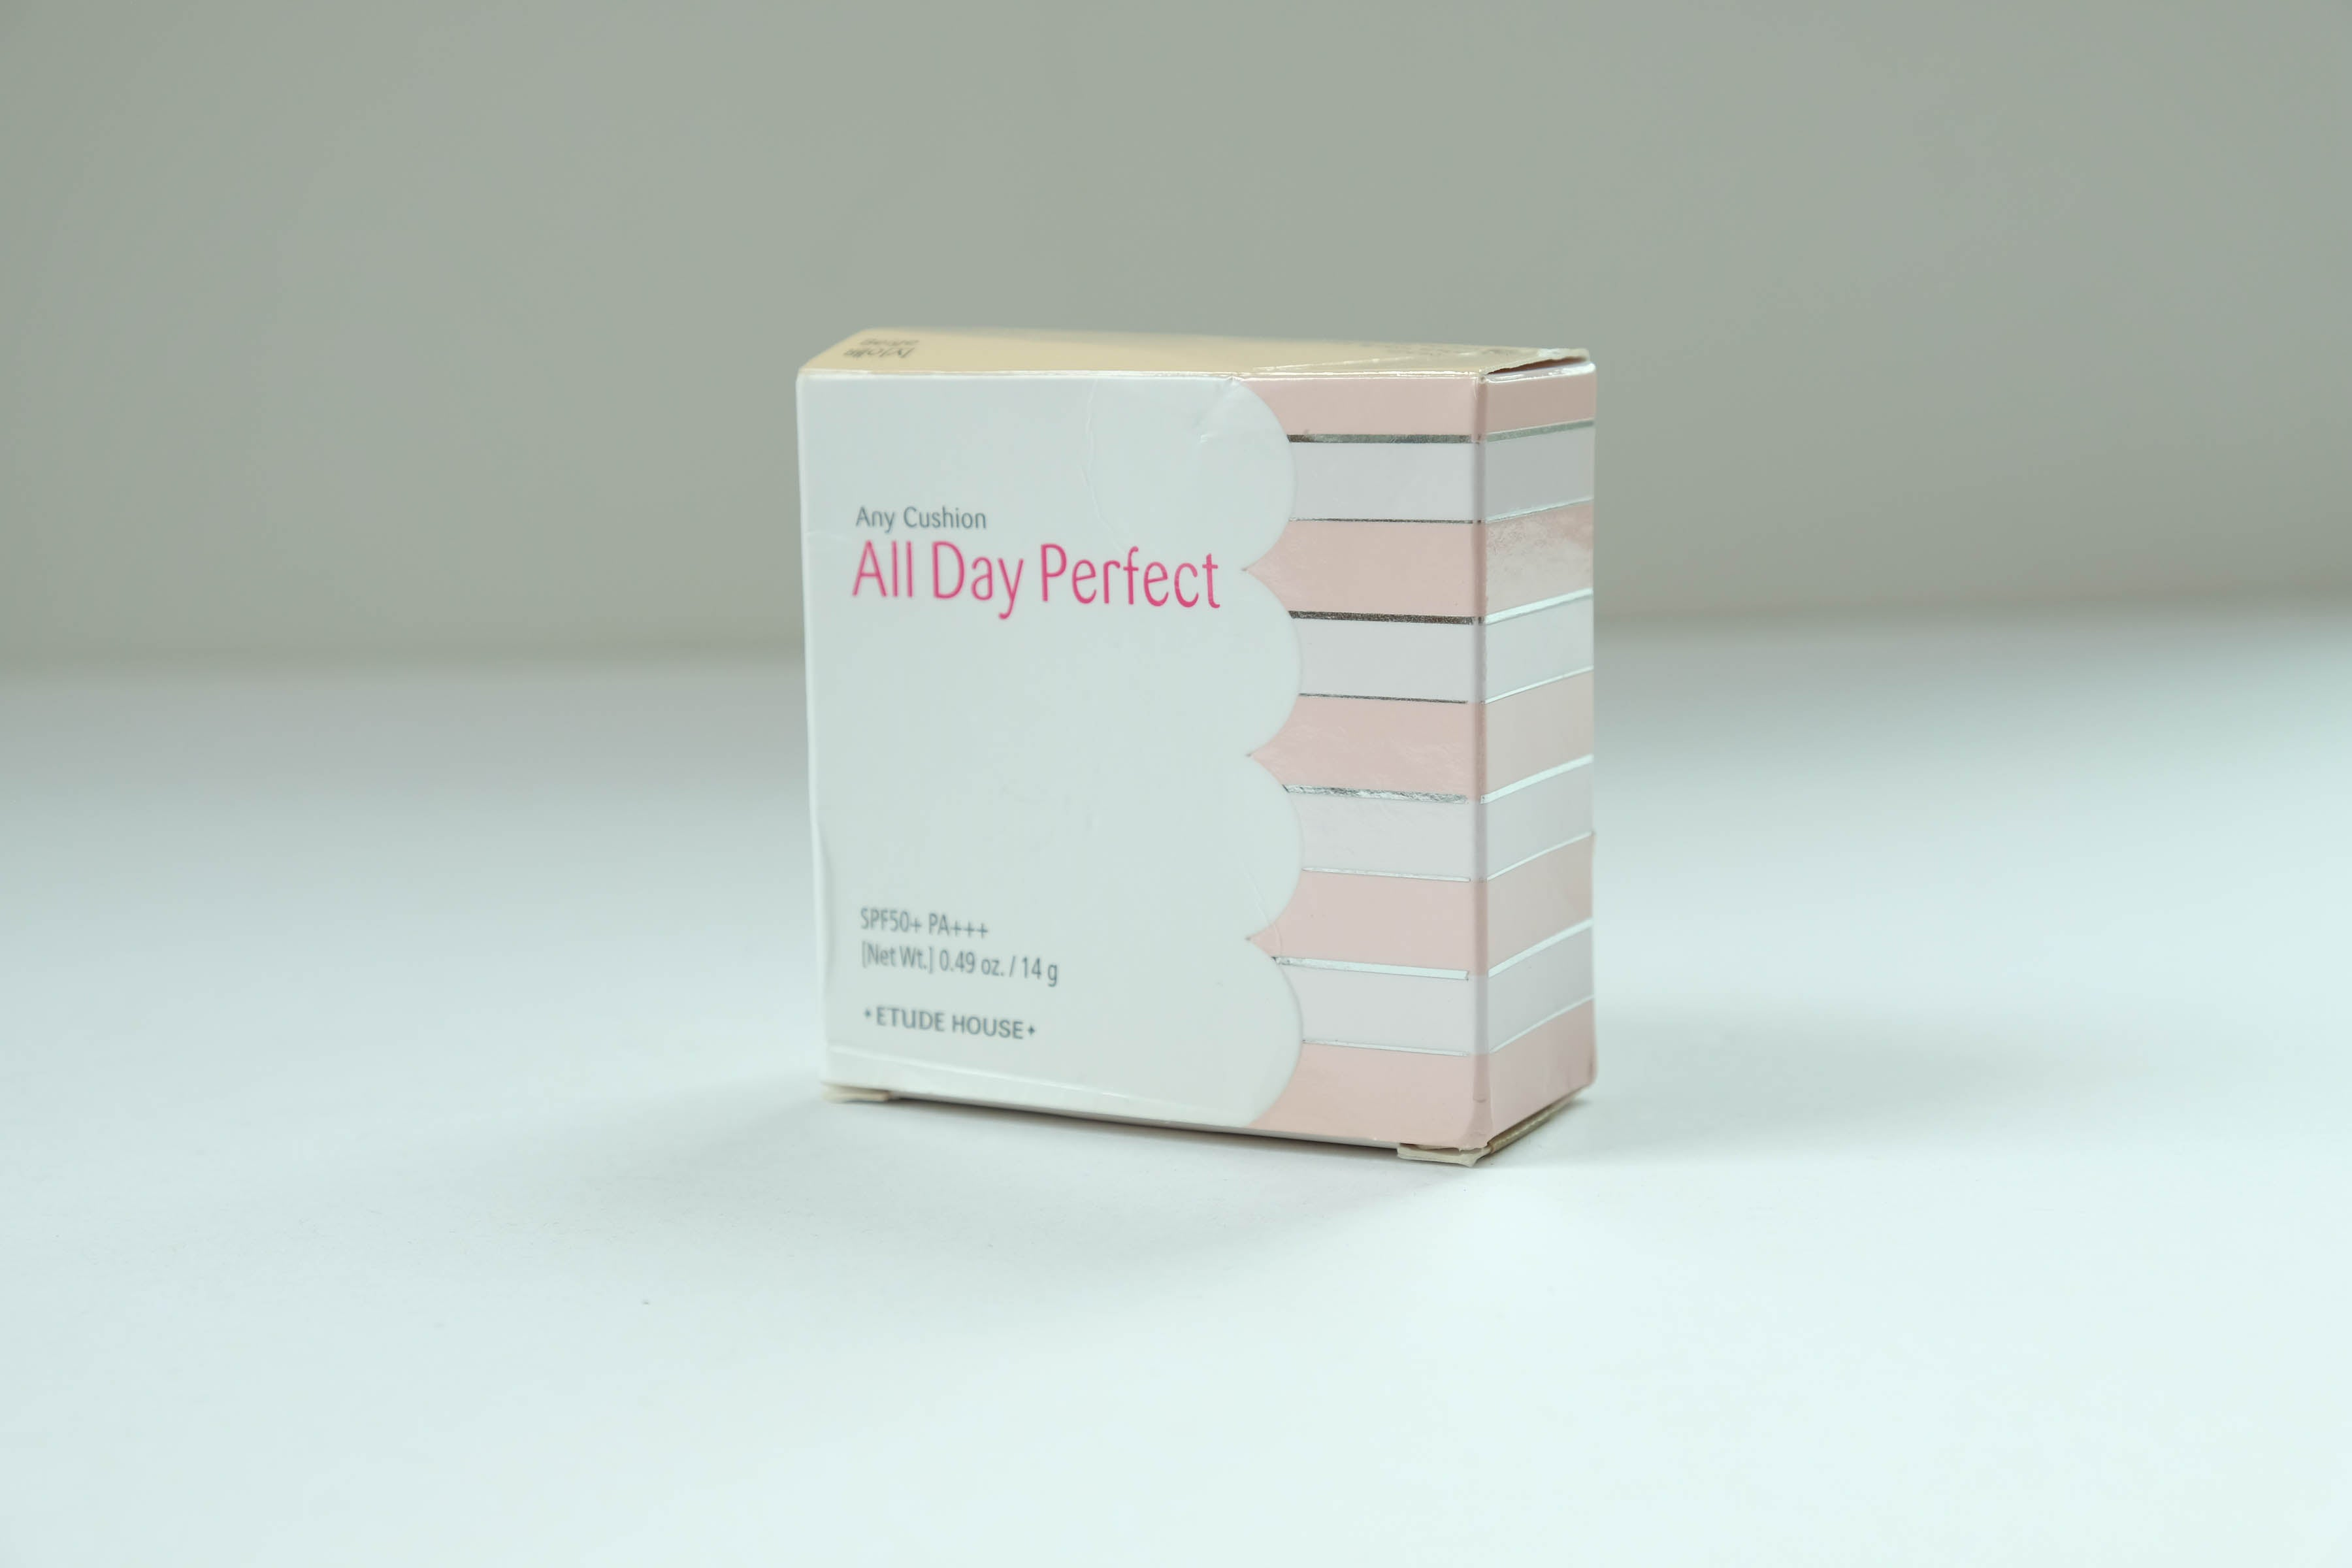 All Day Perfect Cushion (Beige) with Cushion Case